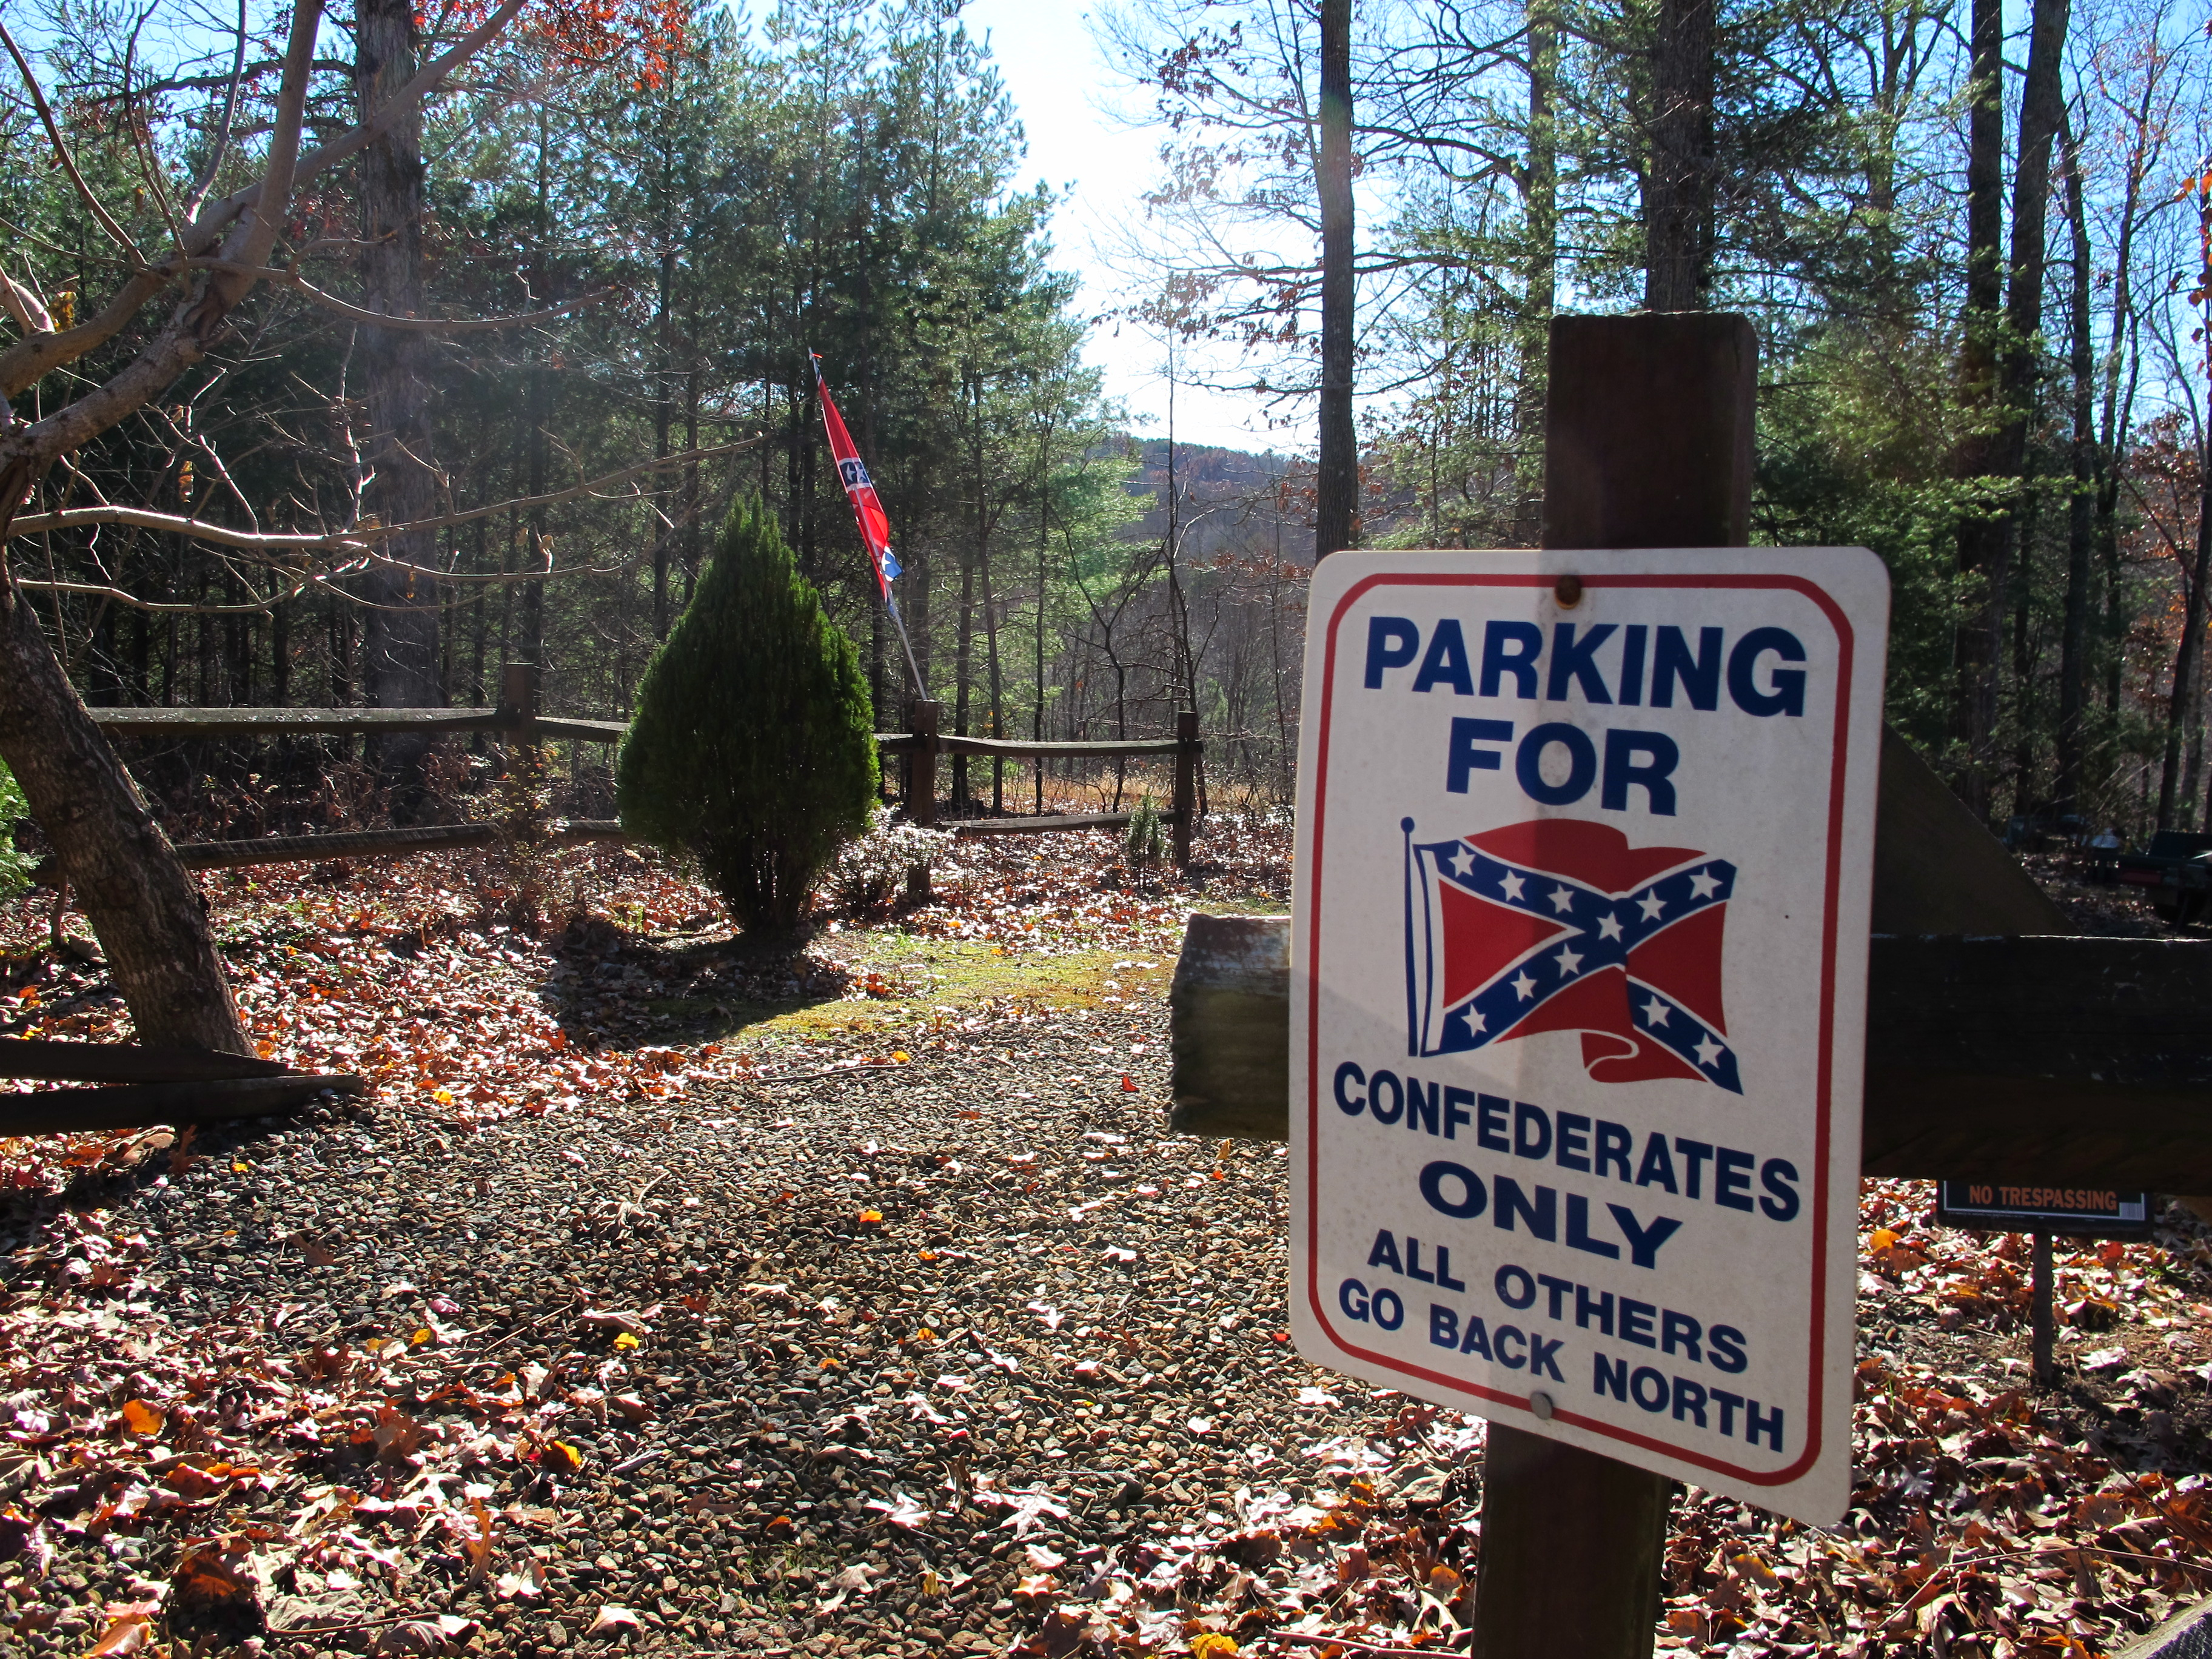 A Confederates Only parking sign